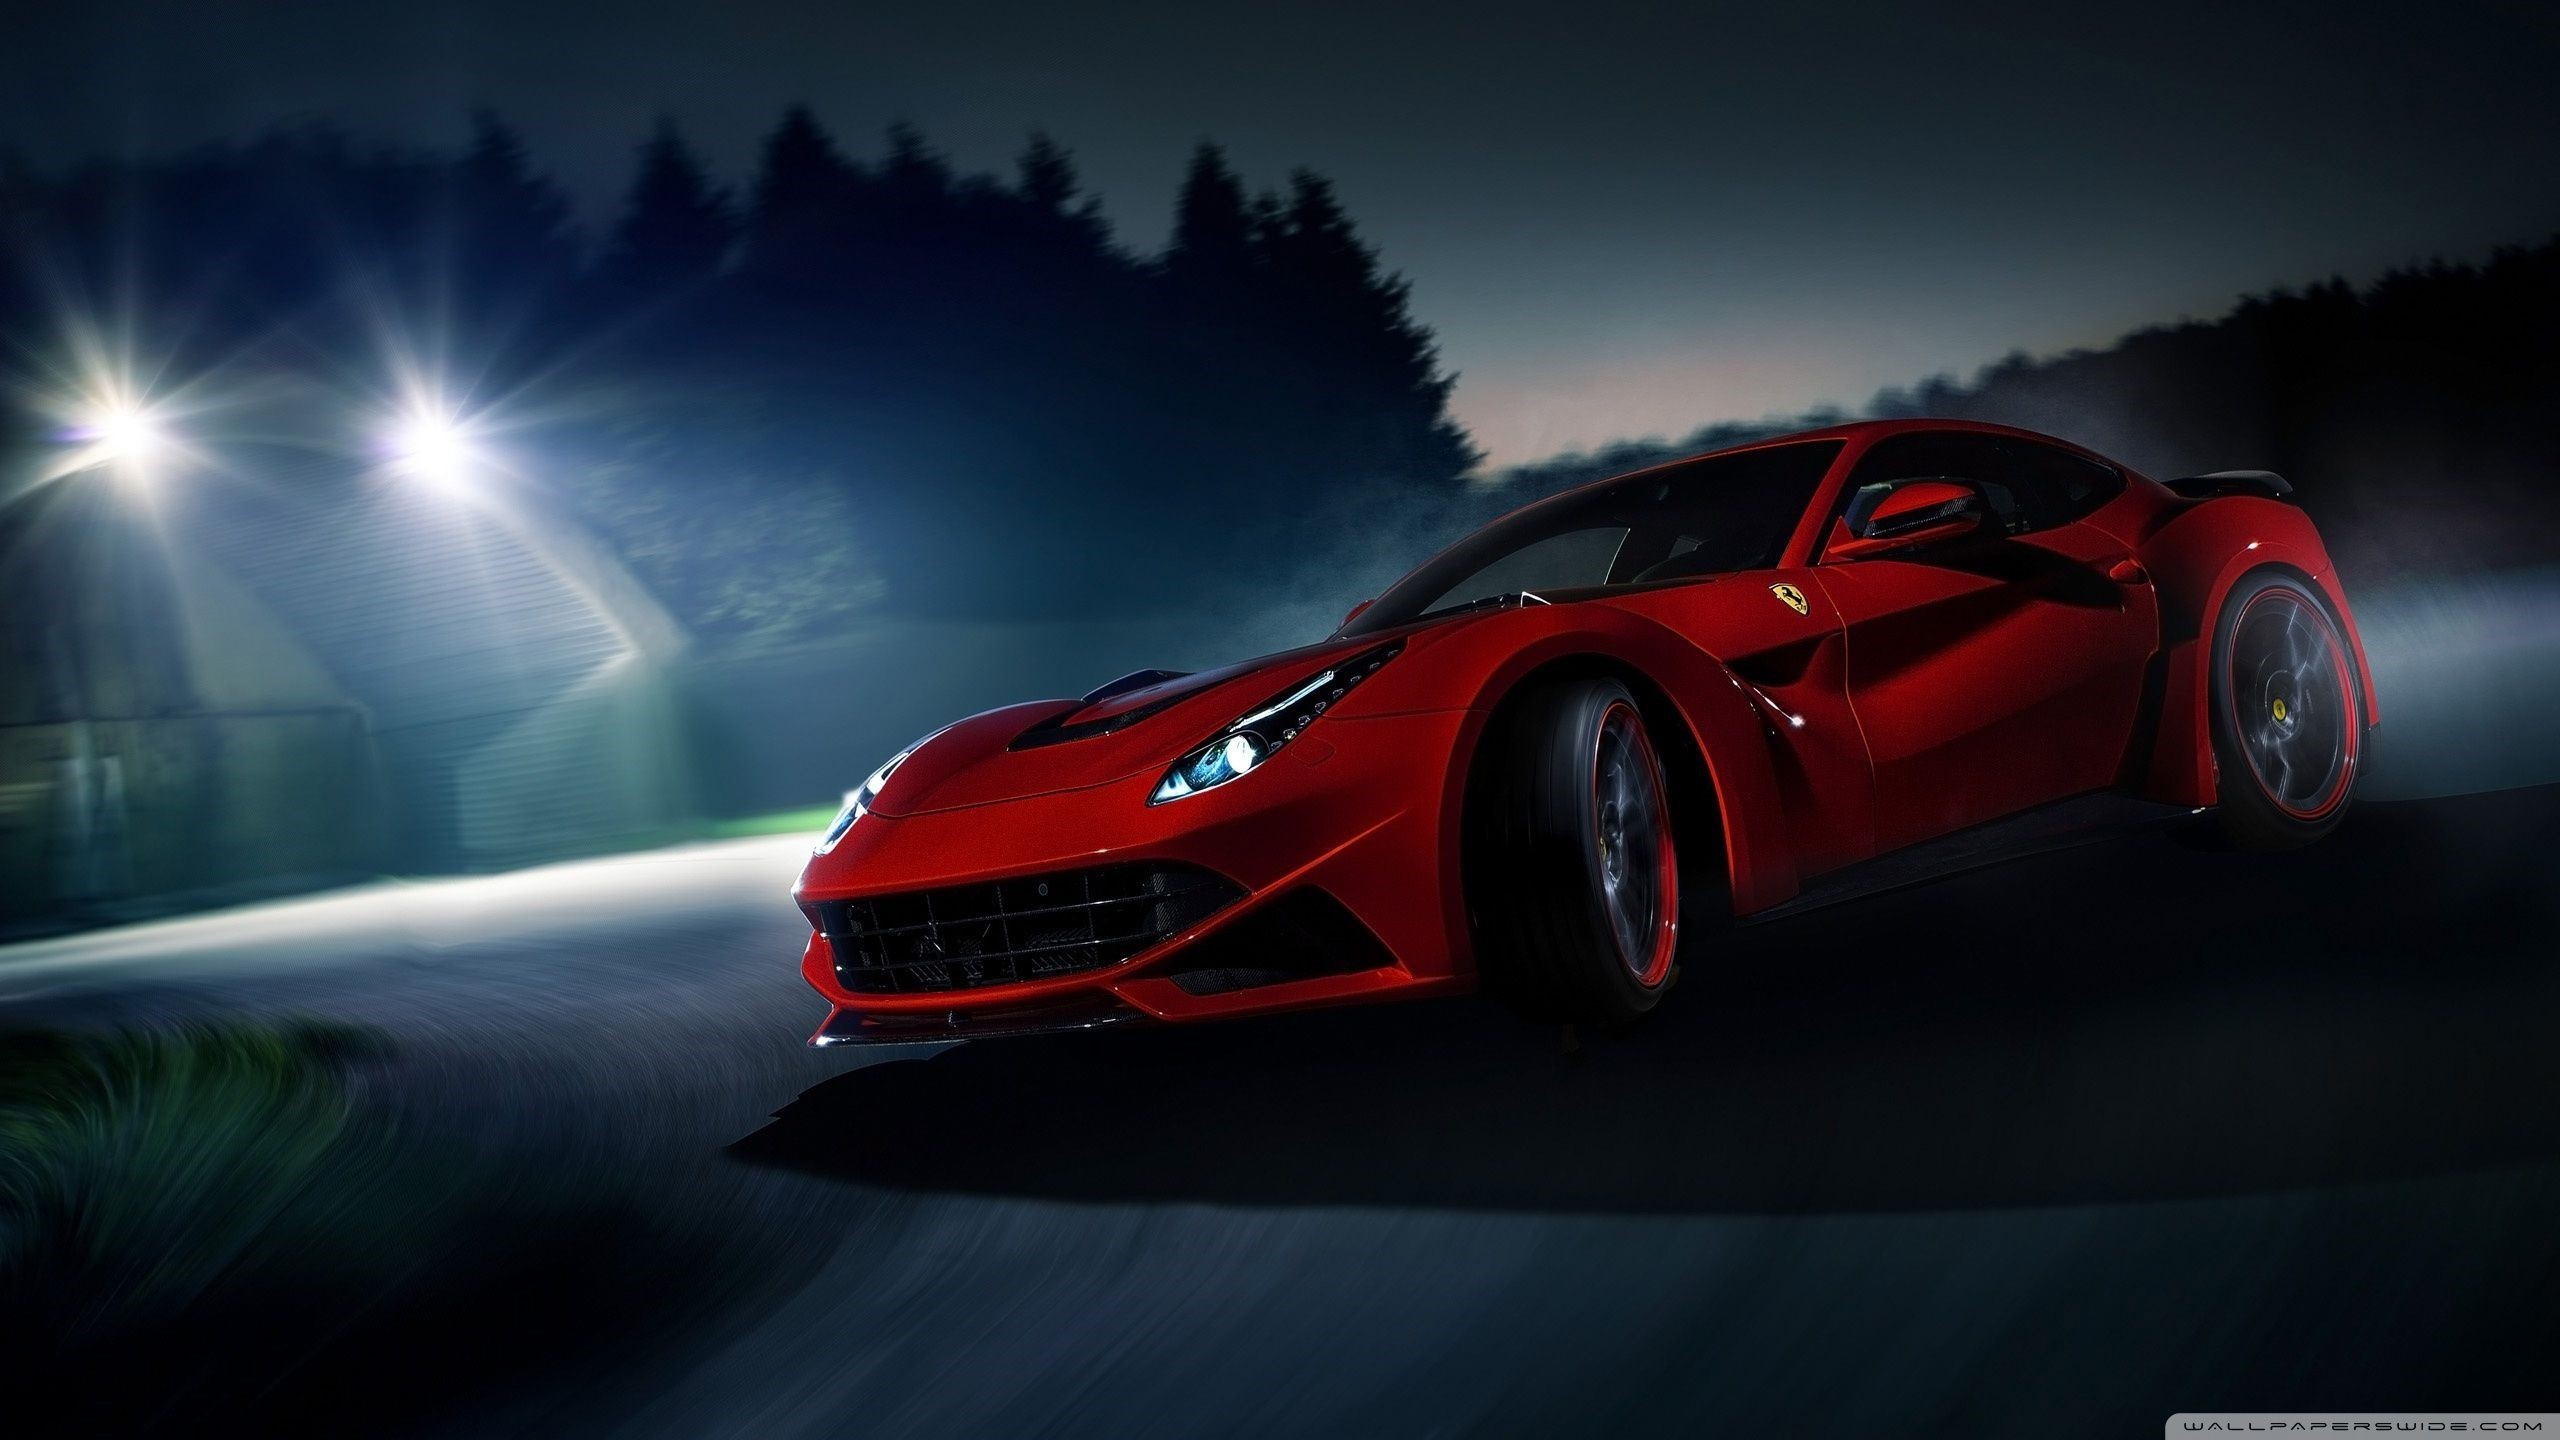 Ferrari HD Wallpapers